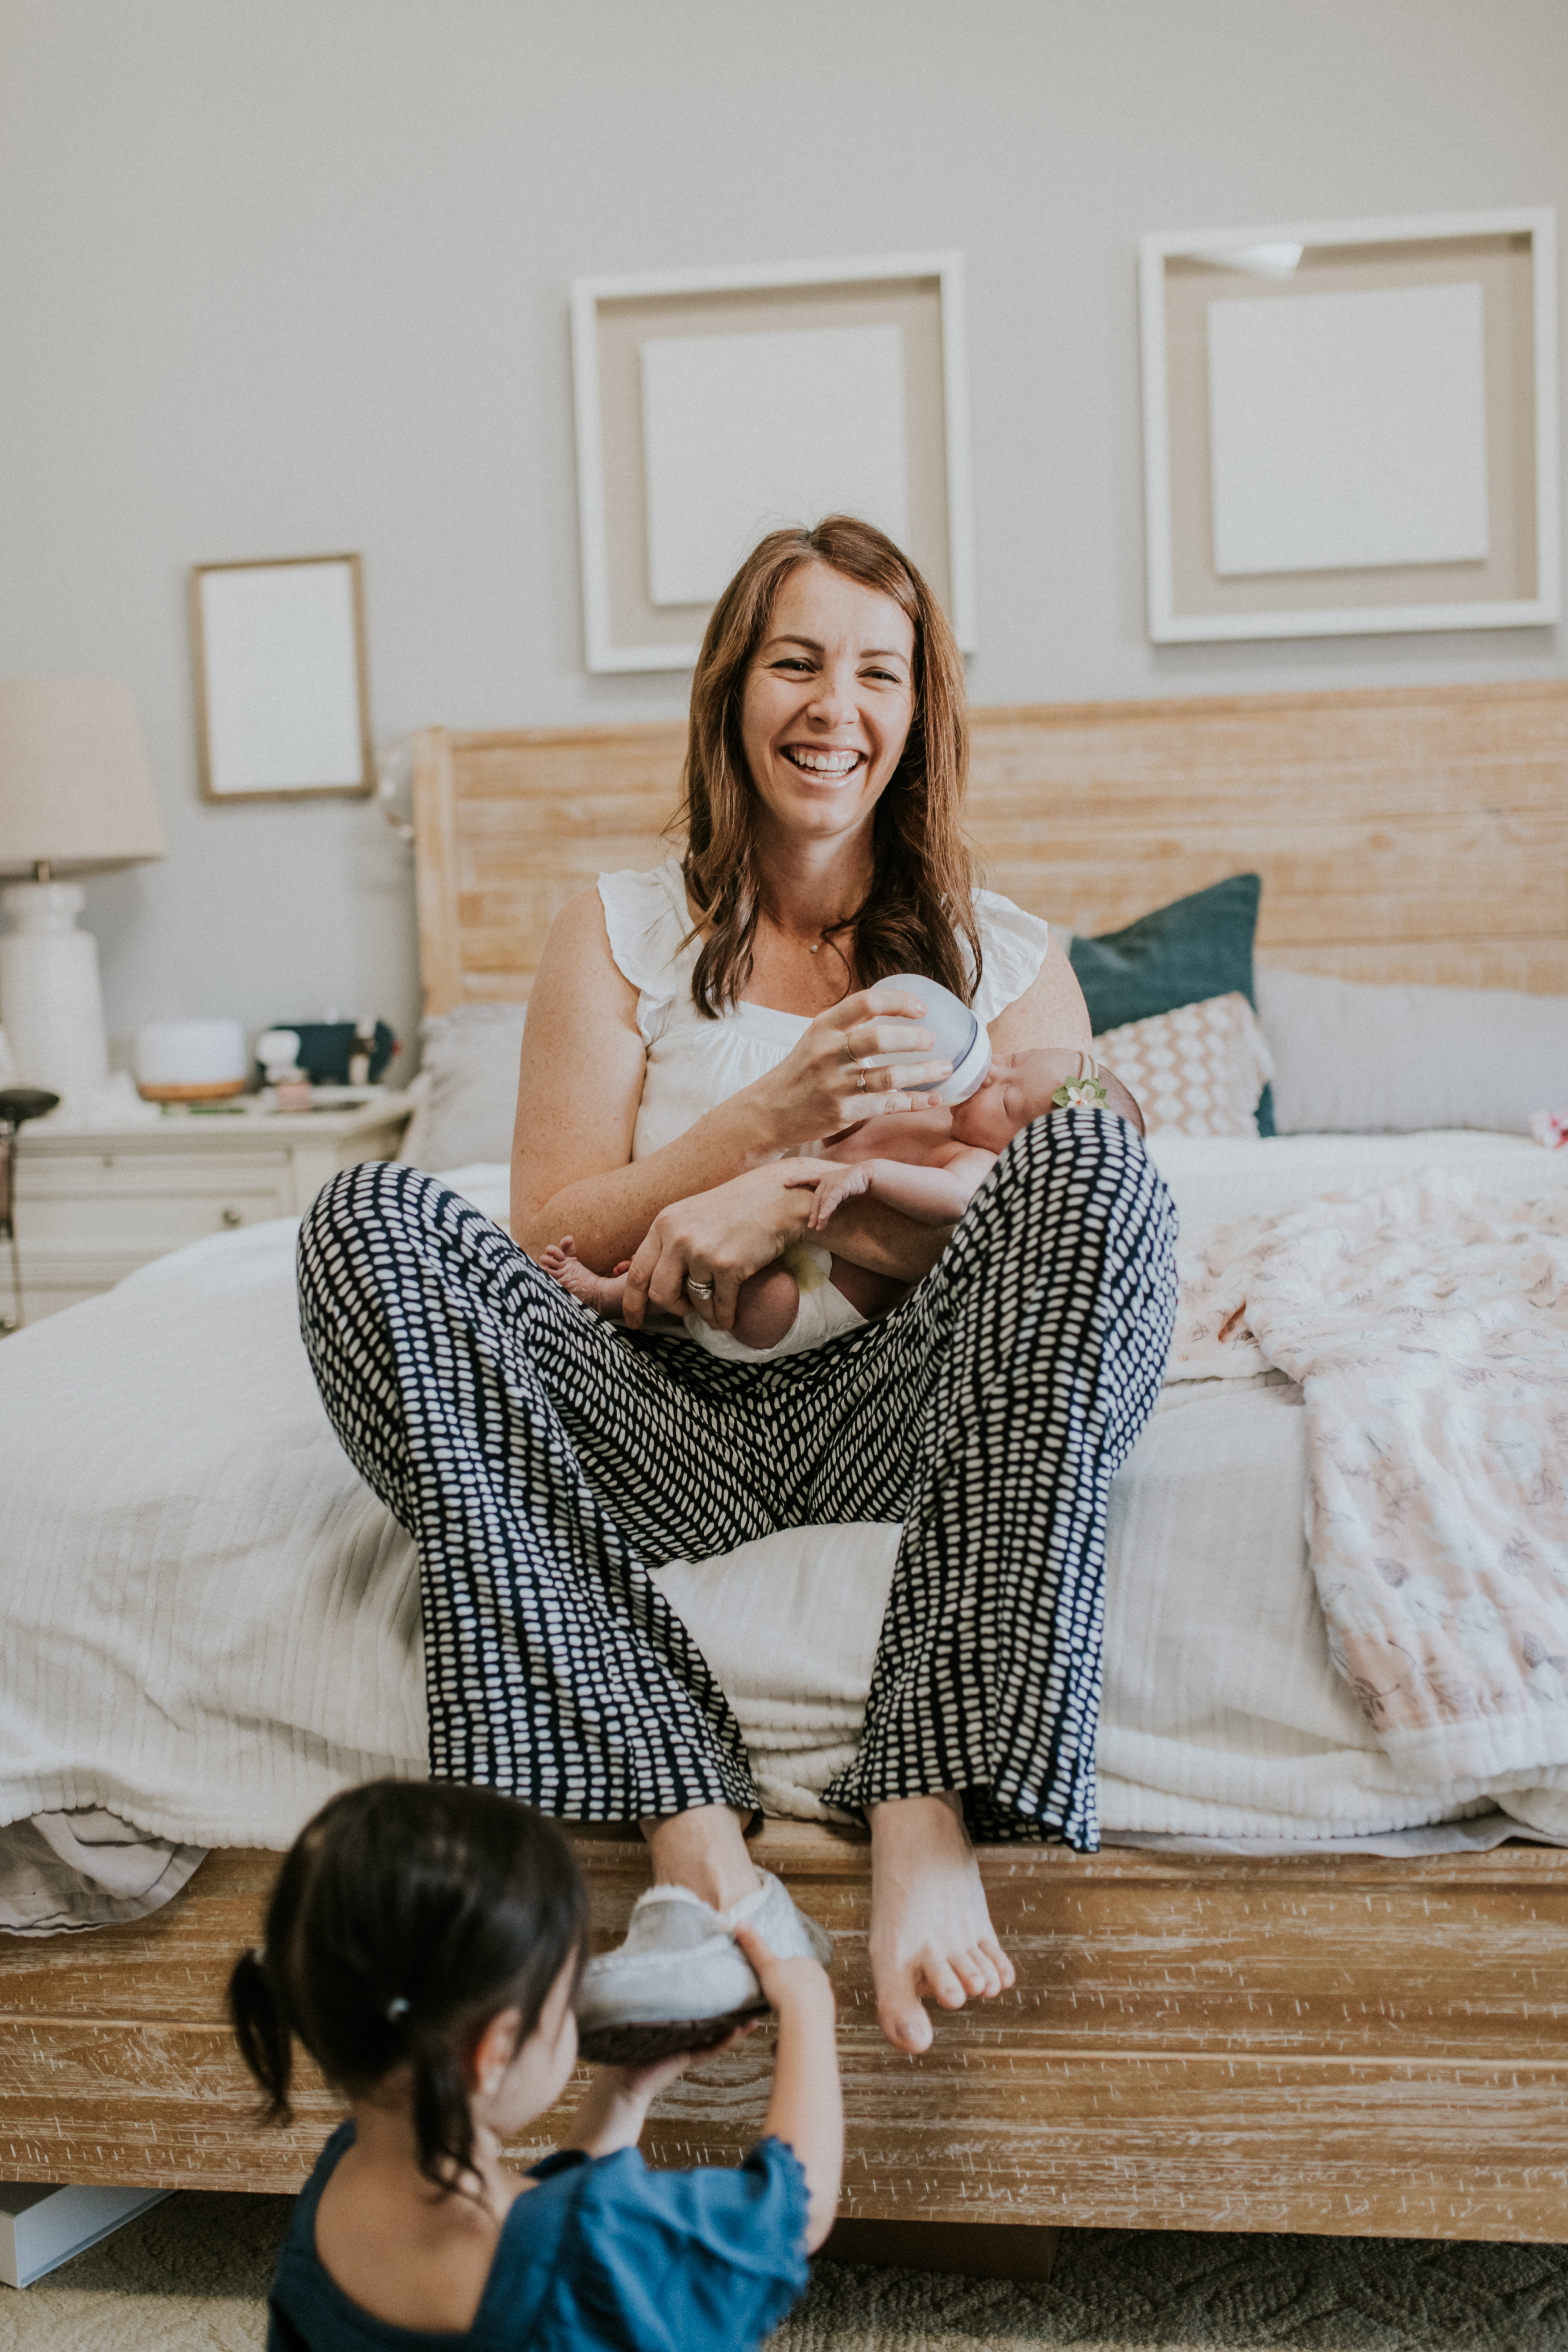 mom holding baby candid at home lifestyle newborn photography los angeles california